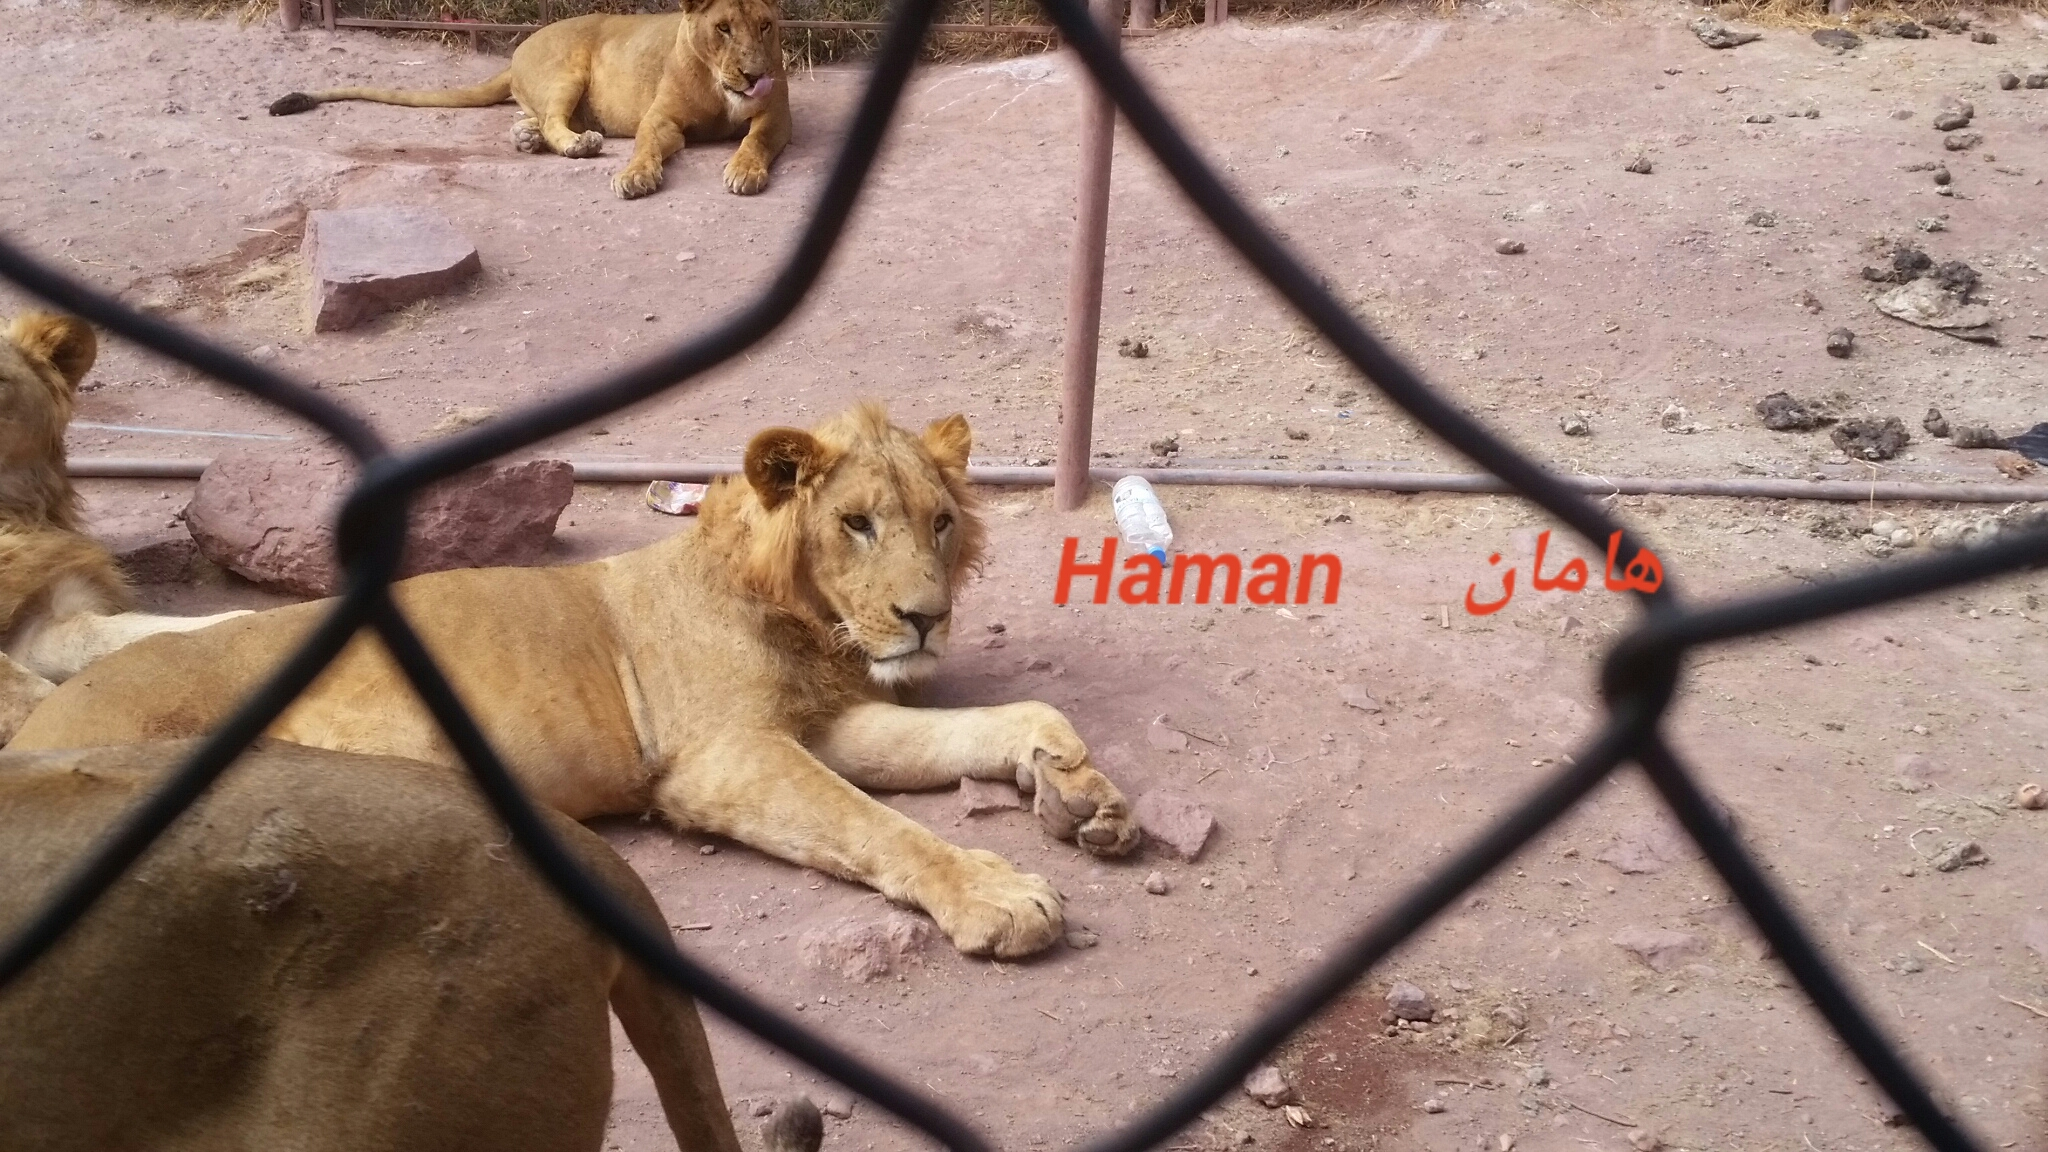 Ibb Zoo HAMAN lion 7 NOV 2018 hisham pic after feeding today supplier OWAP-AR N-P. yemen zoo rescue.jpg